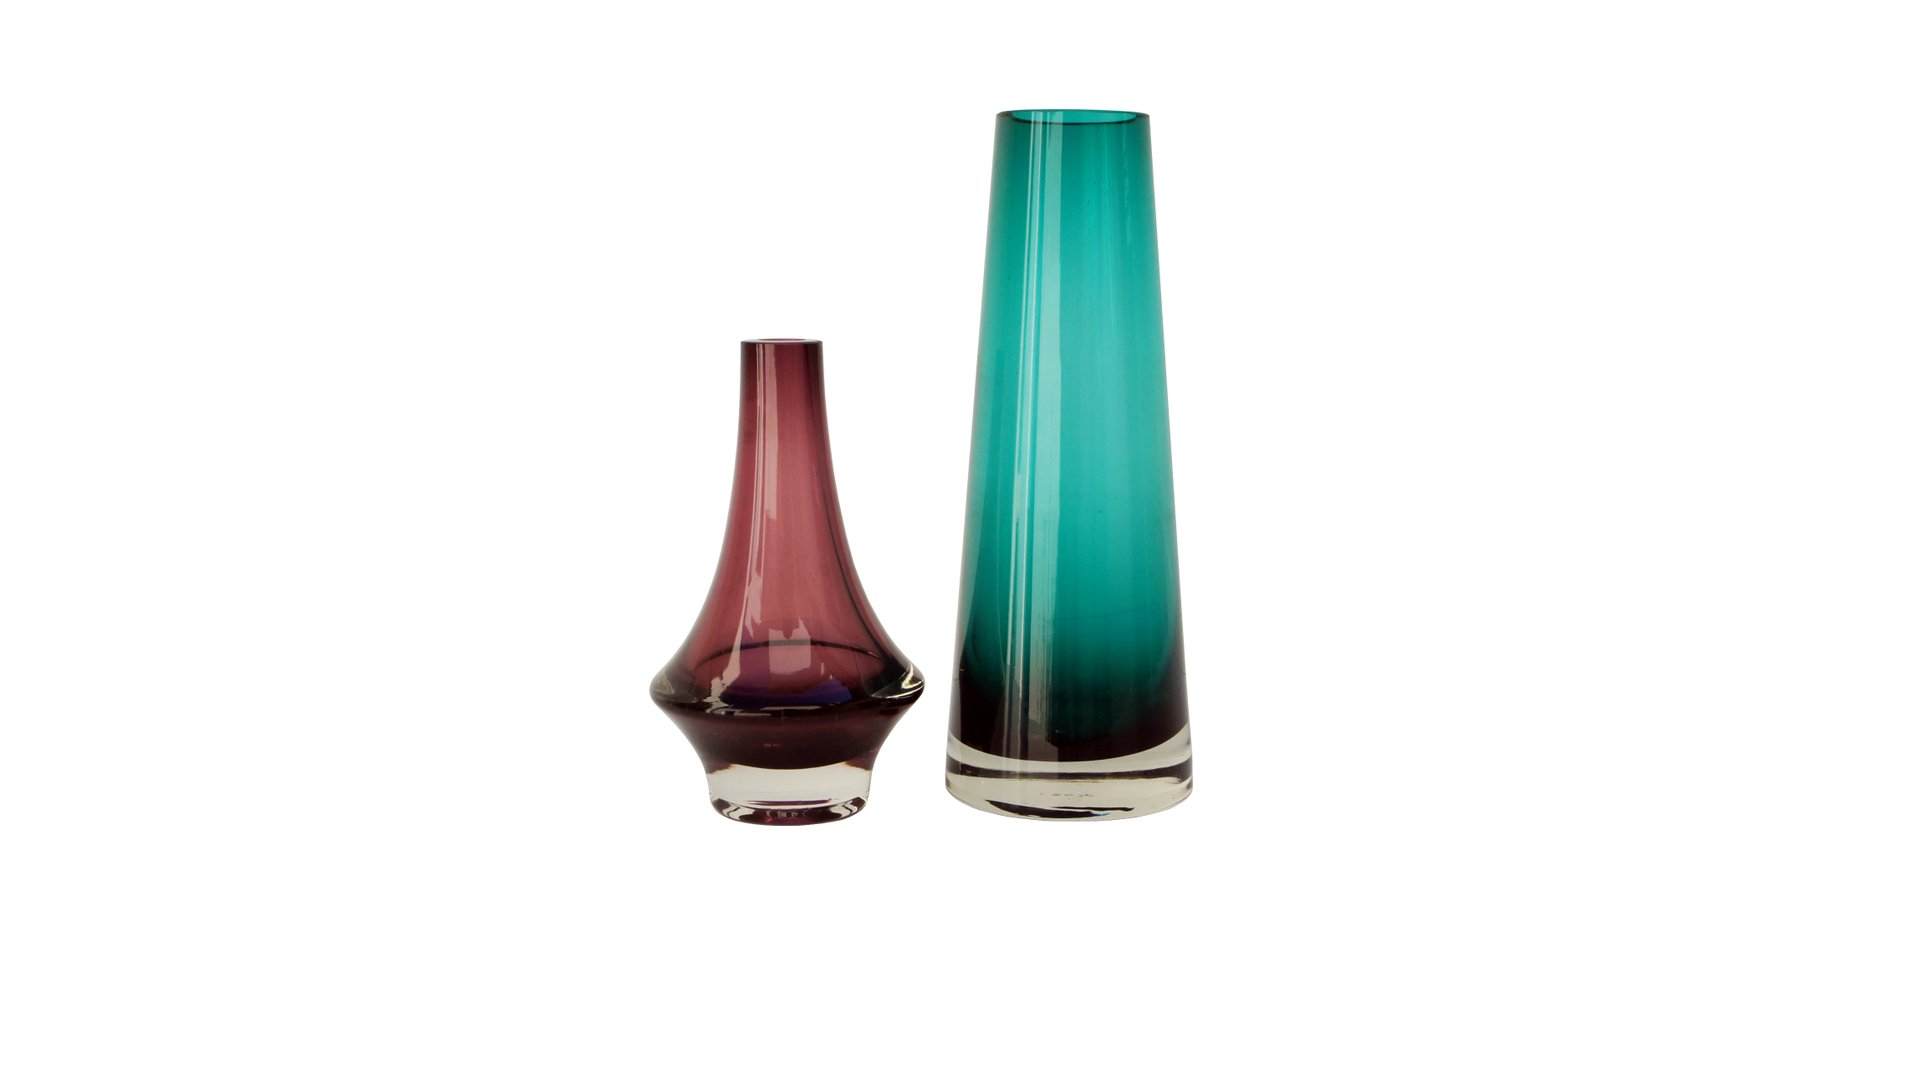 Vintage pink and green glass vases from riihimen set of 2 for vintage pink and green glass vases from riihimen set of 2 floridaeventfo Image collections